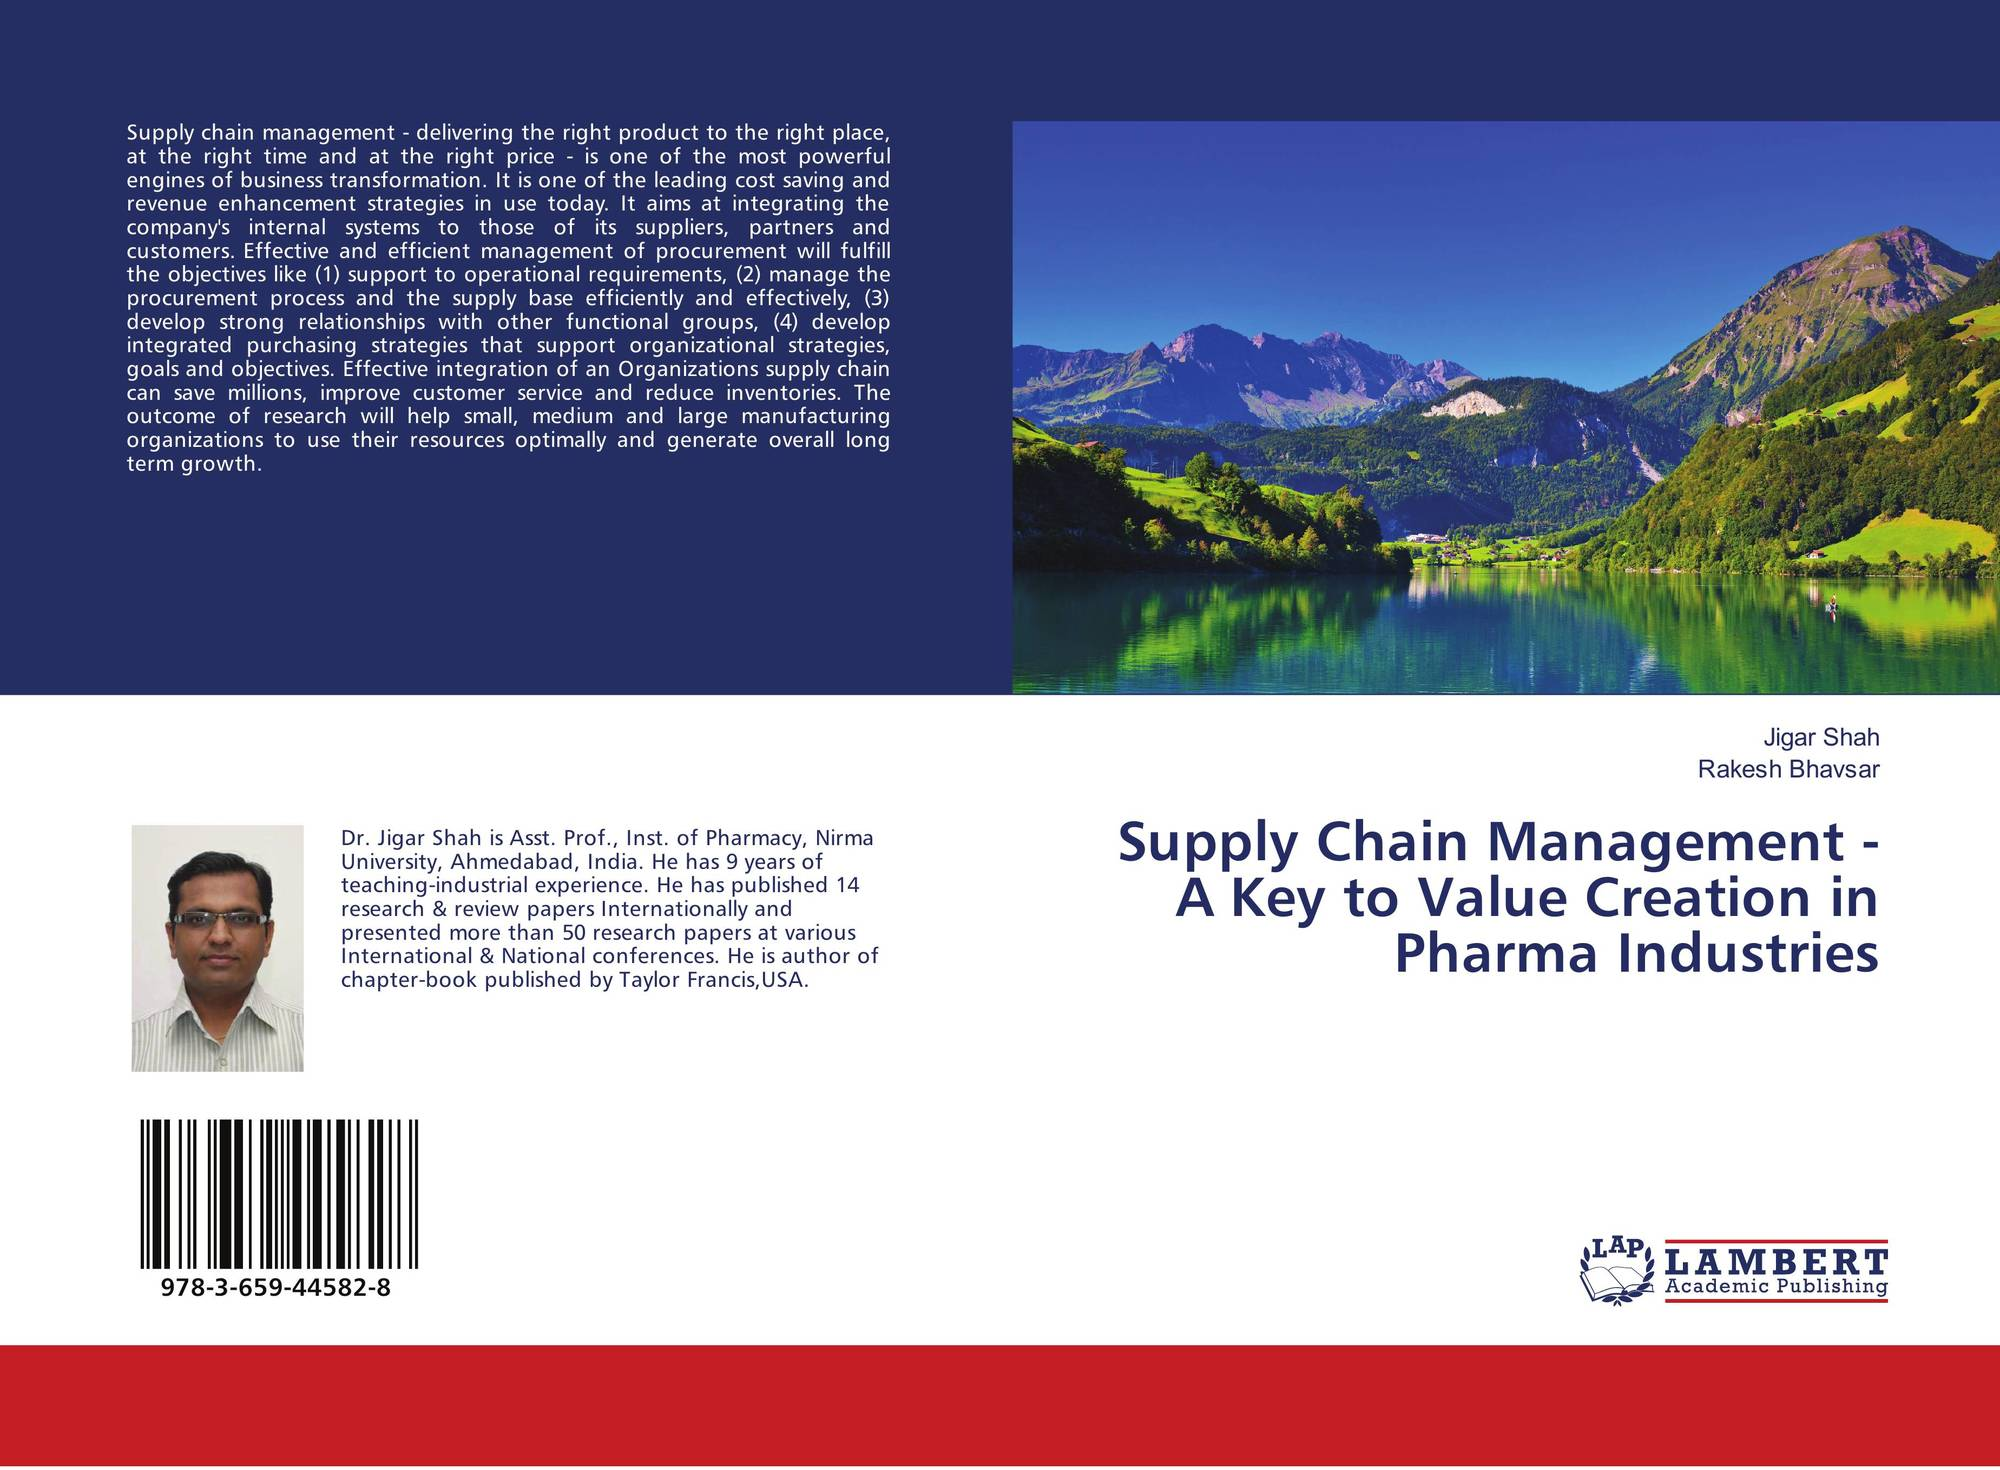 managing the co creation value Value creation is the primary aim of any business entity creating value for customers helps sell products and services, while creating value for shareholders, in the form of increases in stock price, insures the future availability of investment capital to fund operations.